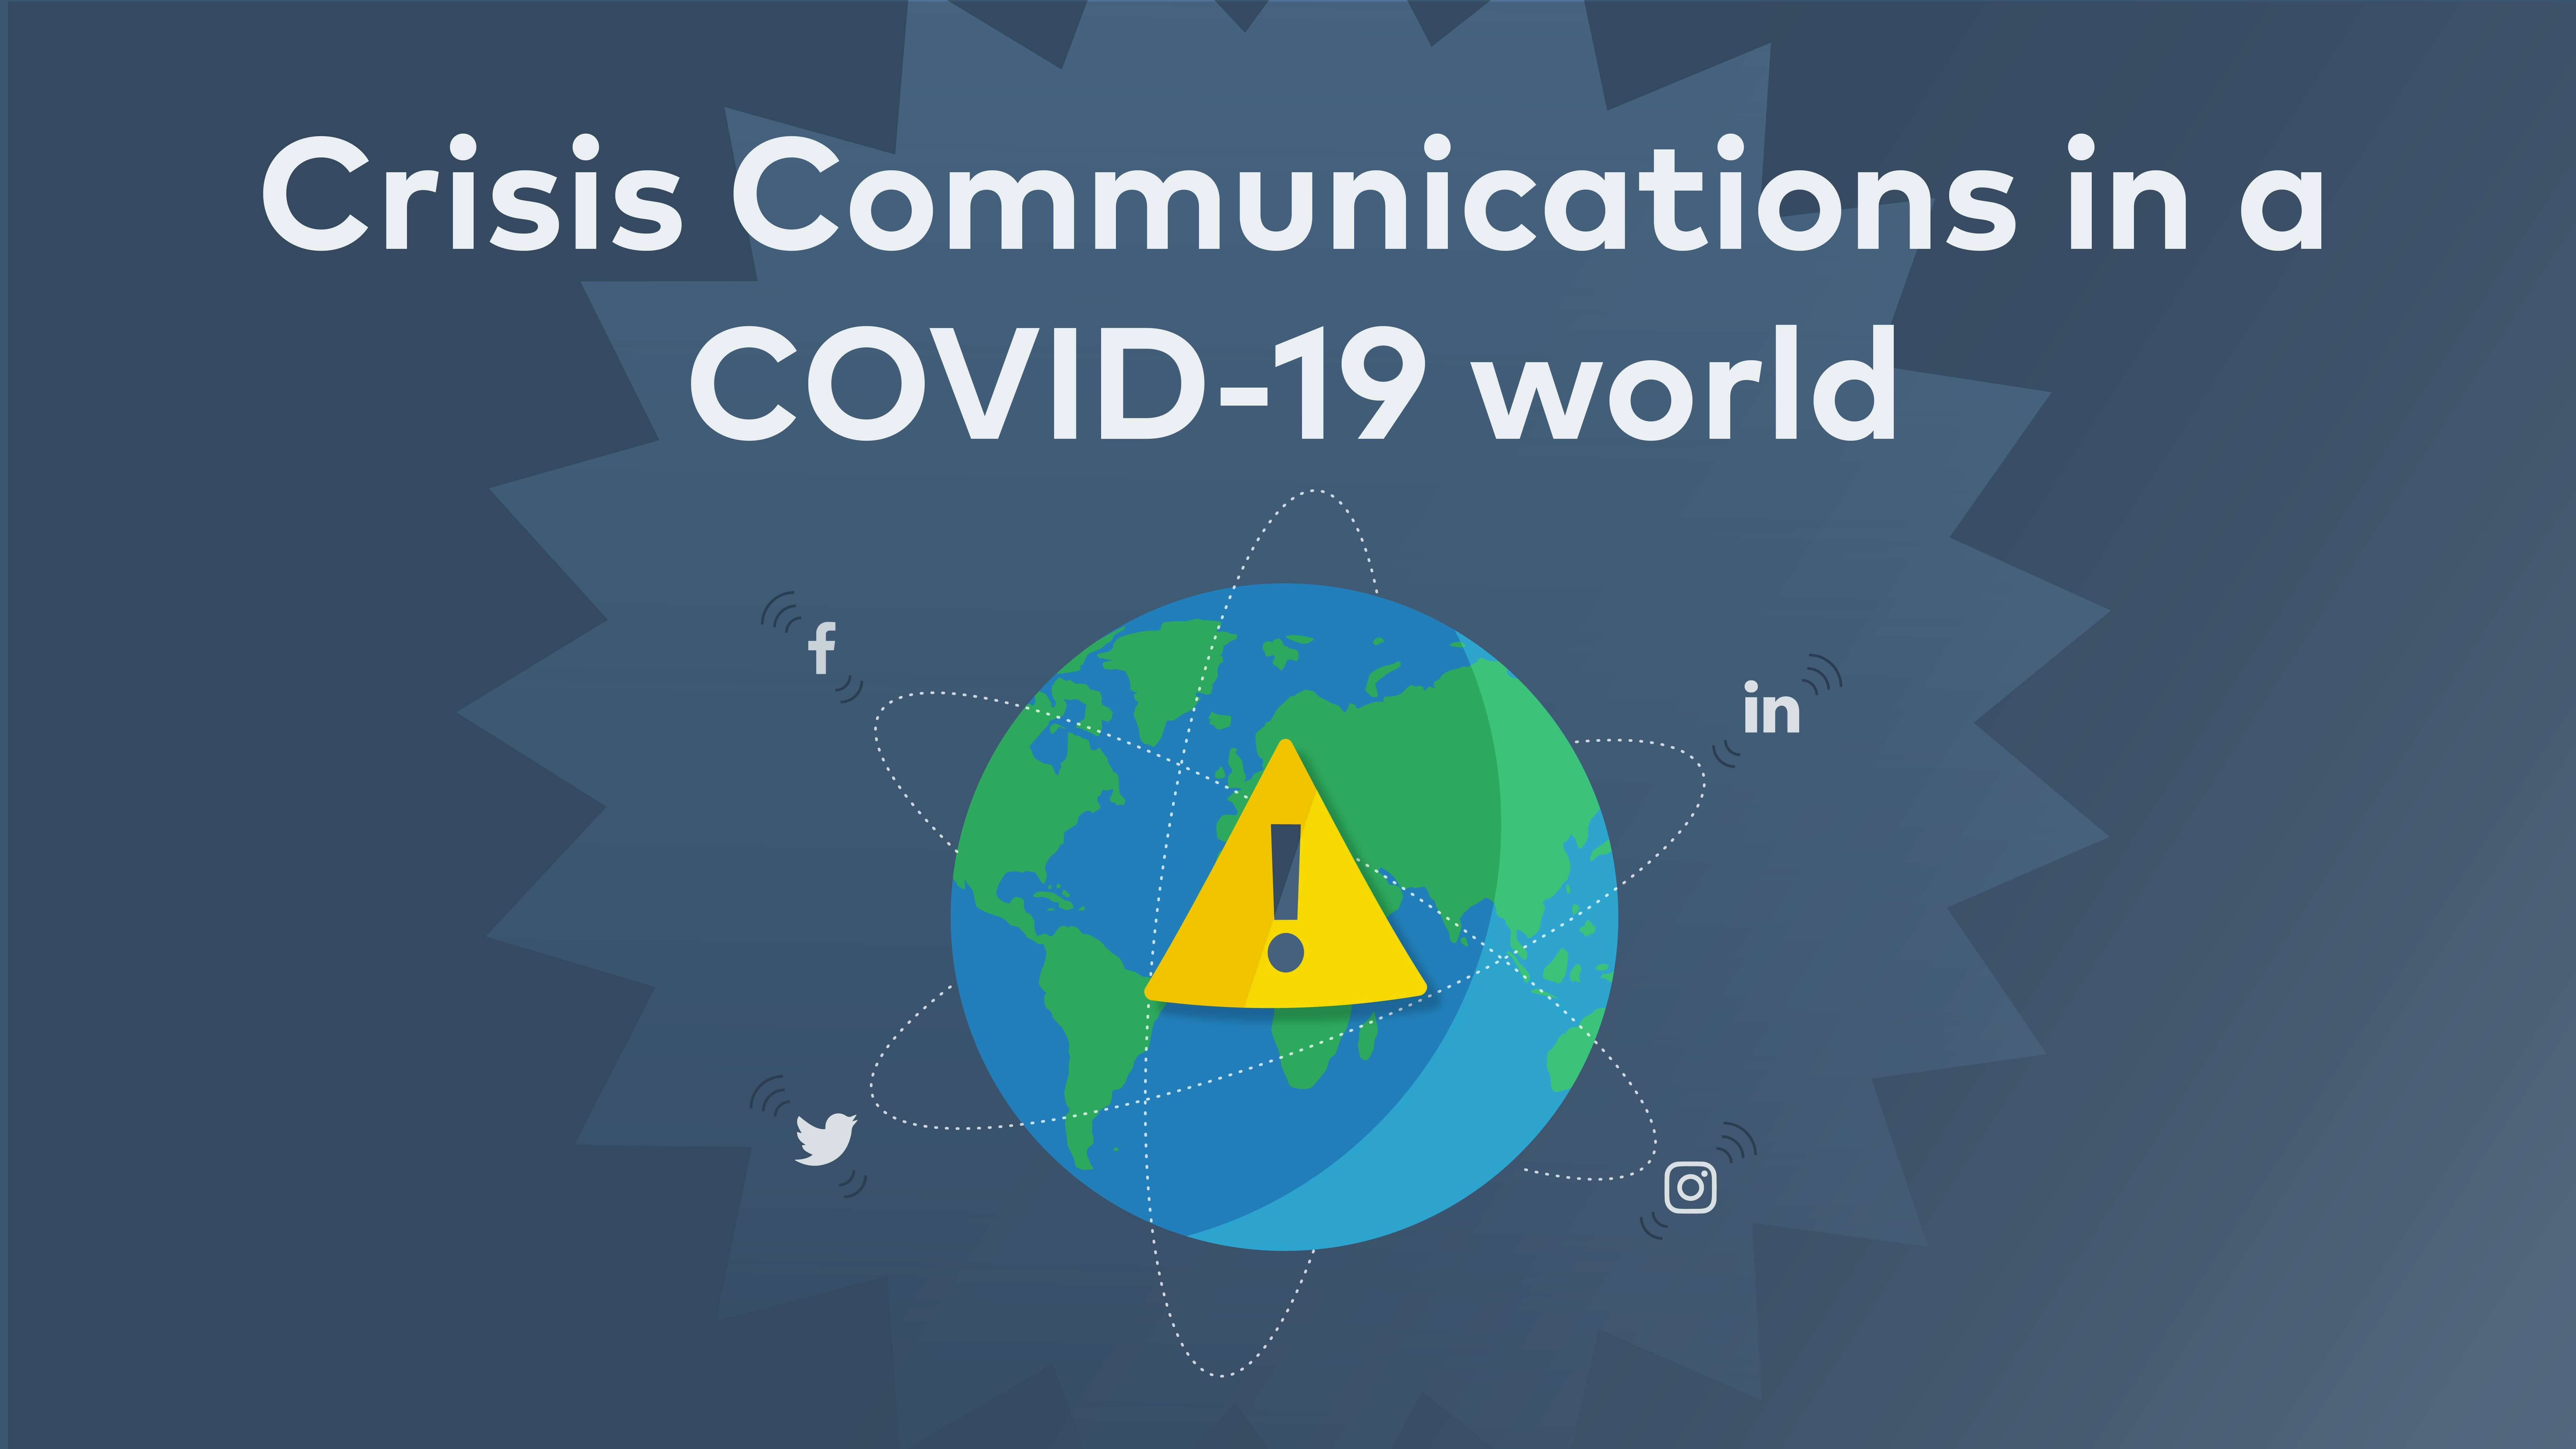 Cover image for post: Crisis Communications in a COVID-19 World